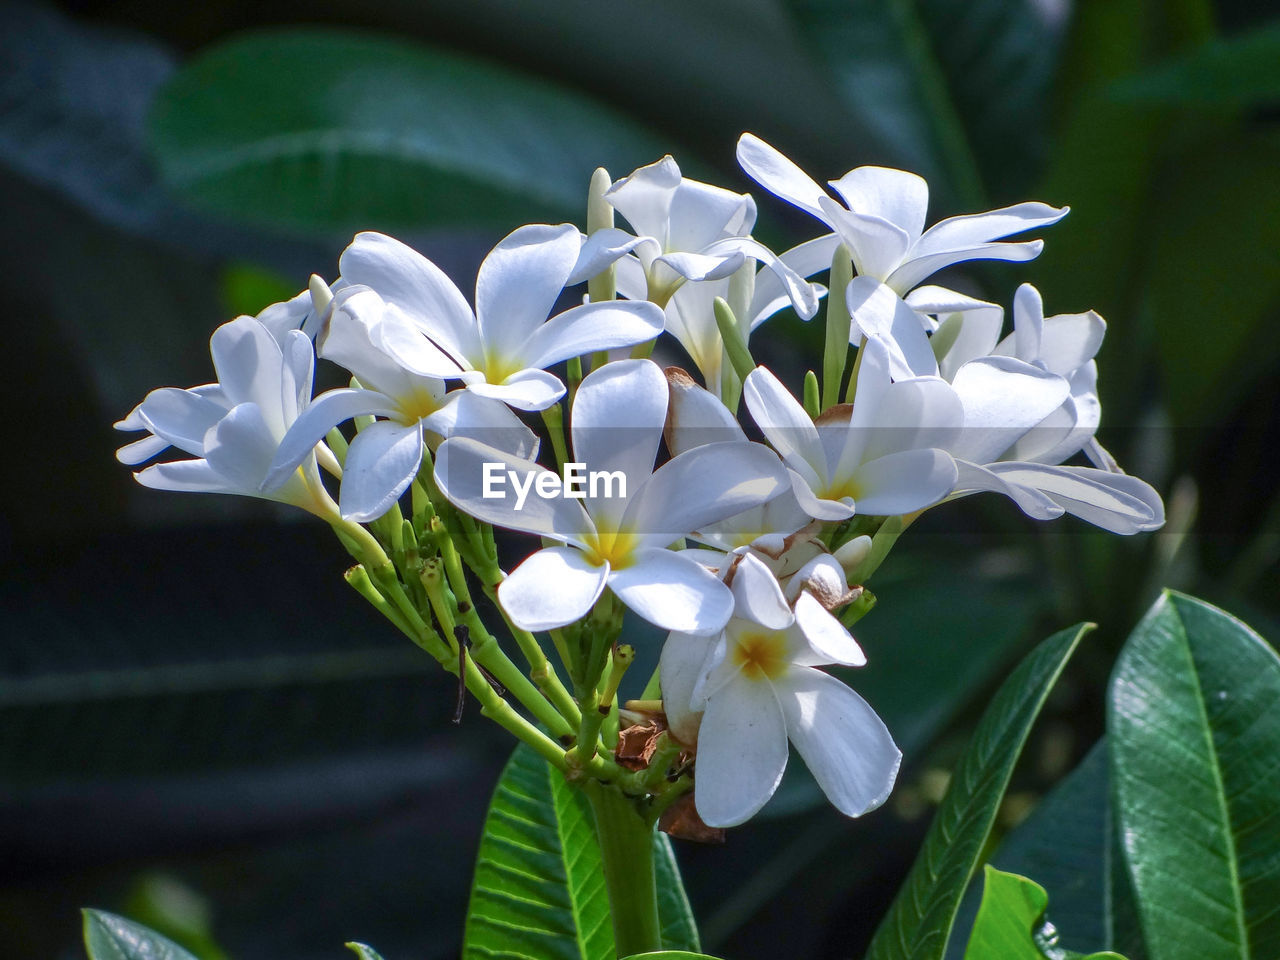 flowering plant, flower, plant, vulnerability, beauty in nature, petal, fragility, freshness, growth, close-up, inflorescence, flower head, plant part, white color, leaf, focus on foreground, nature, day, no people, botany, outdoors